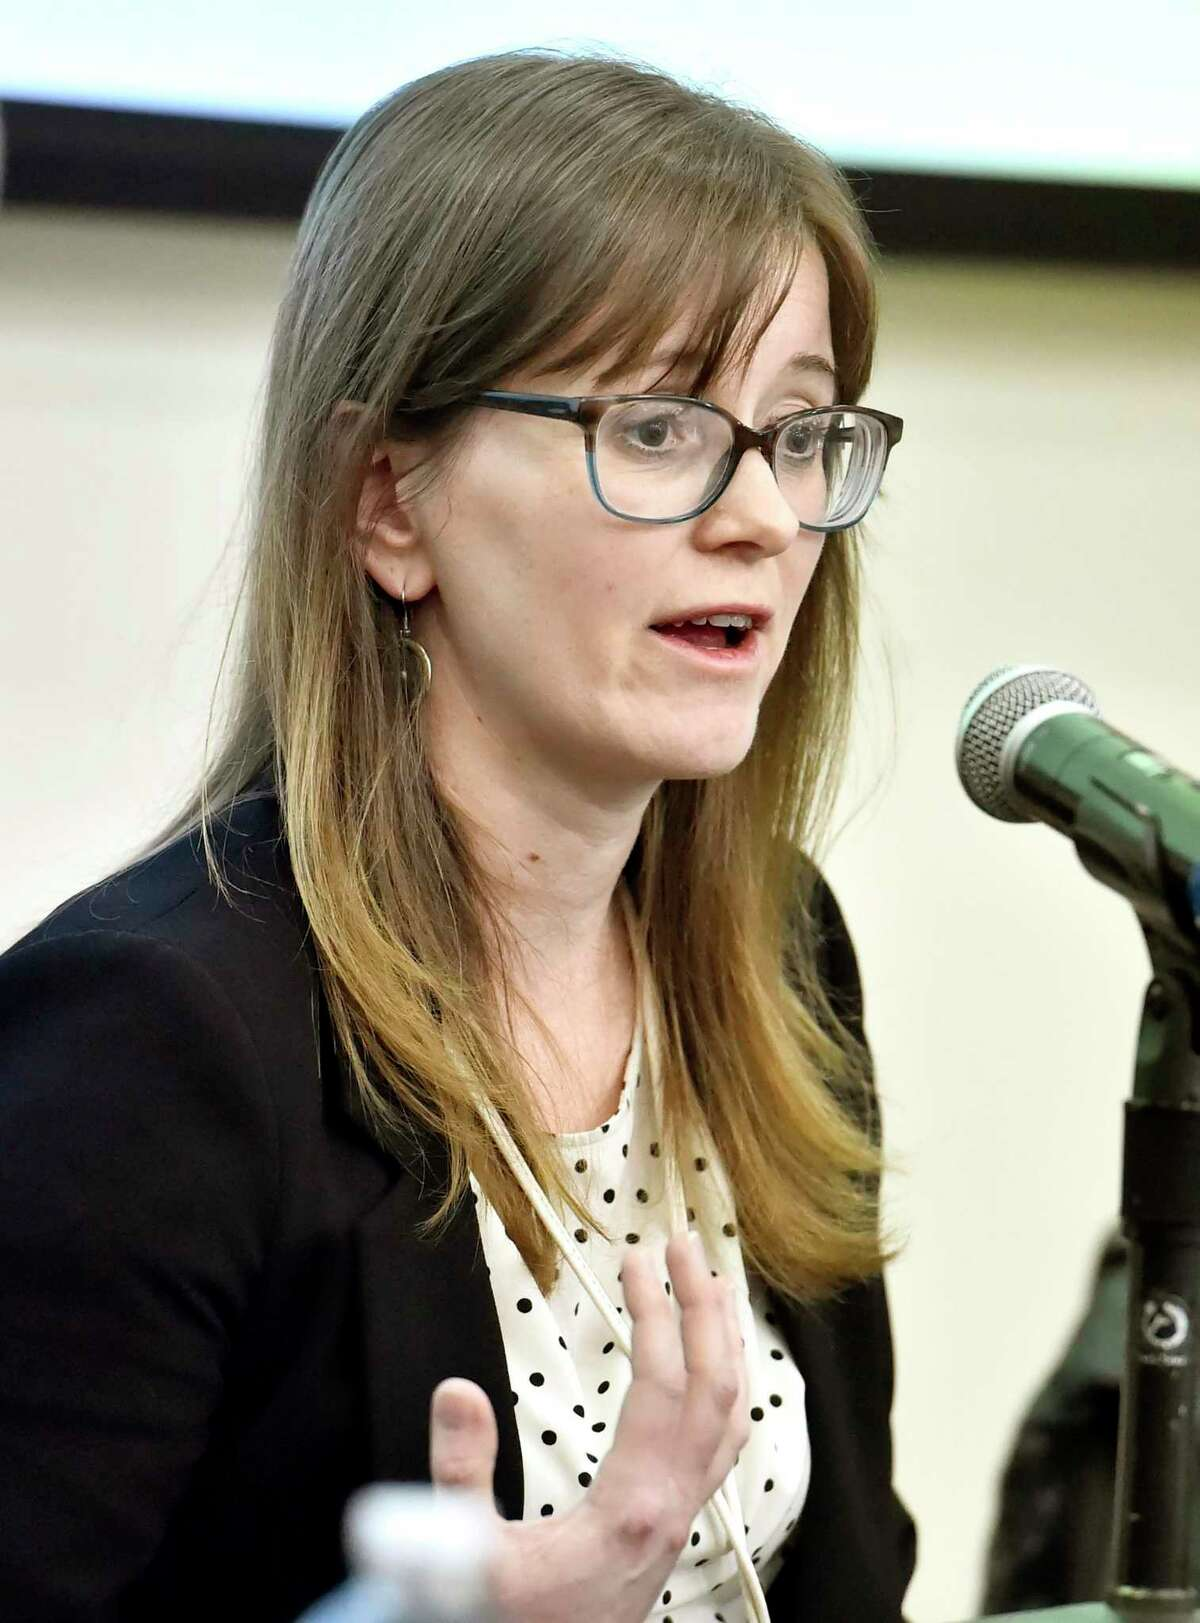 """West Haven, Connecticut - Monday, March 09, 2020: Virologist Anna Kloc, Ph.d., a University of New Haven Assistant Professor of Biology and Environmental Science speaks during a panel discussion Monday on """"Perspectives on COVID-19: Science, Safety, and Society at the University of New Haven in West Haven."""